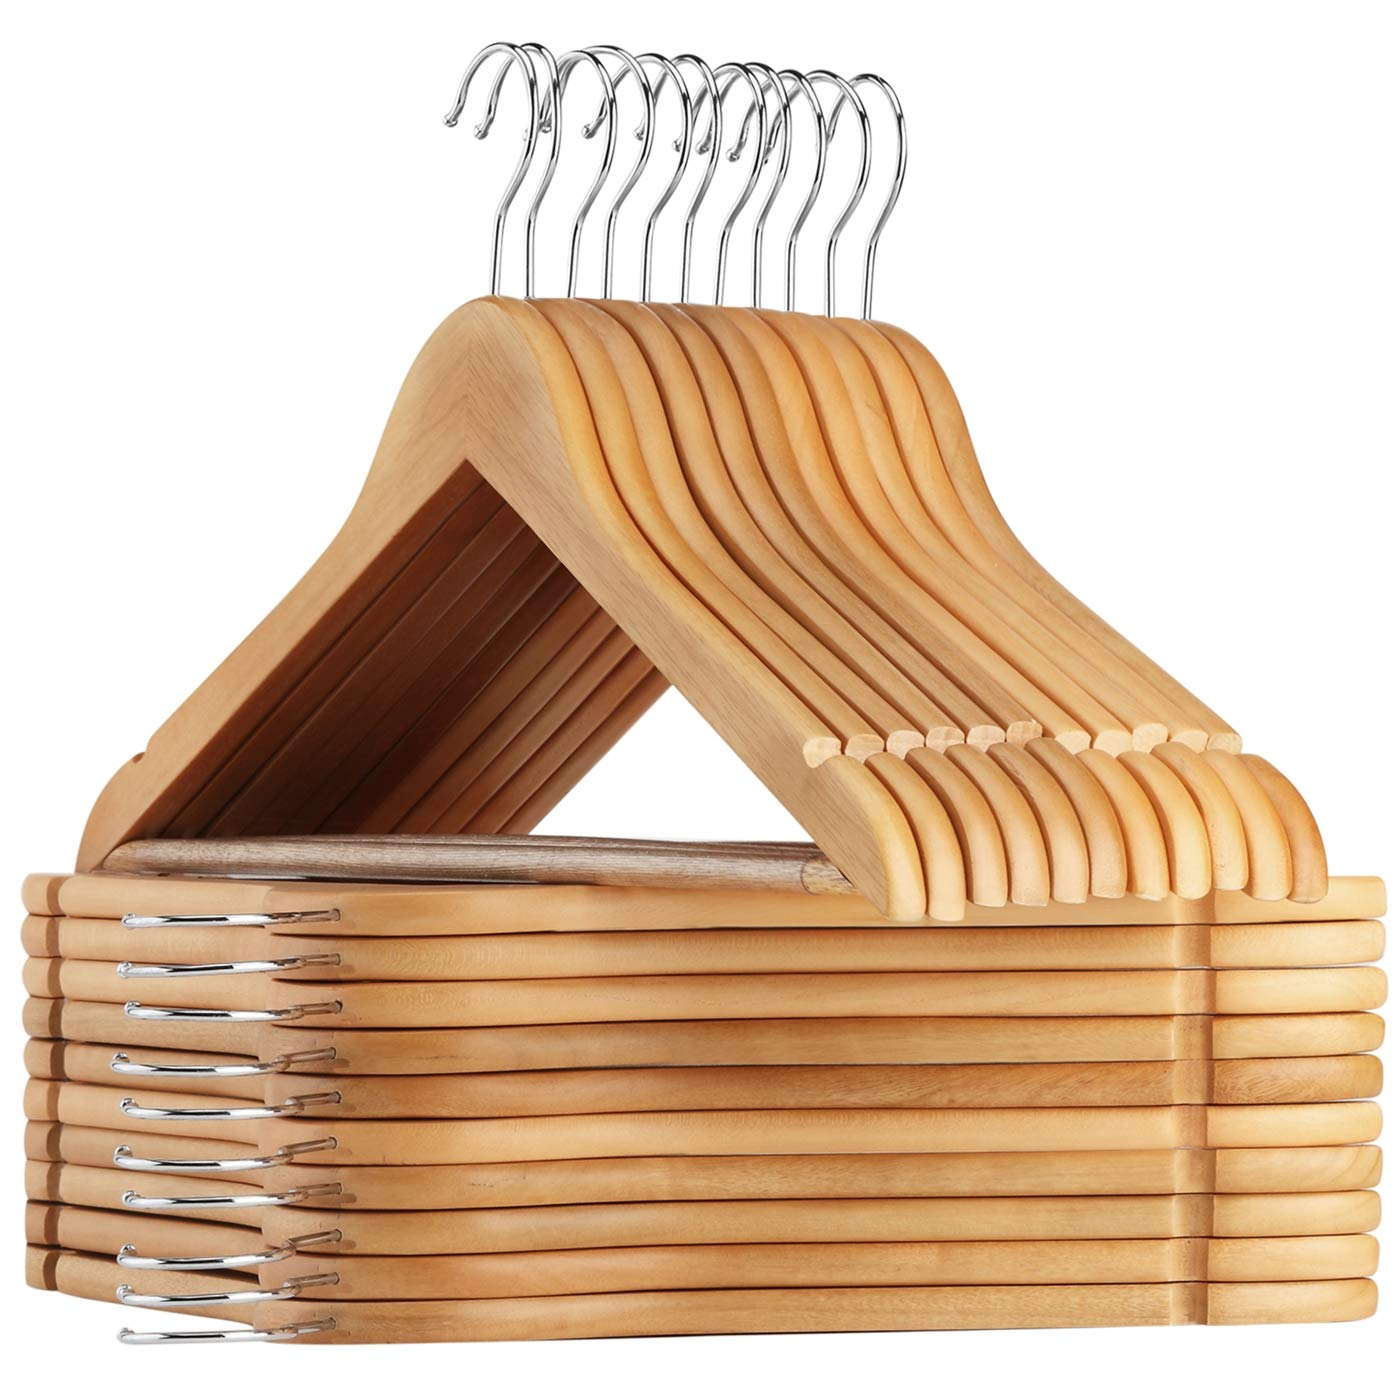 AMKUFO High-Grade Wooden Suit Hangers with Non Slip, 17.5 Inch Premium Solid Wood with 360° Swivel Hook, 24 Free Clothes Hanger Connector Hooks for Space Saving (24 Pack, Natural) 71T-fFXWnbL